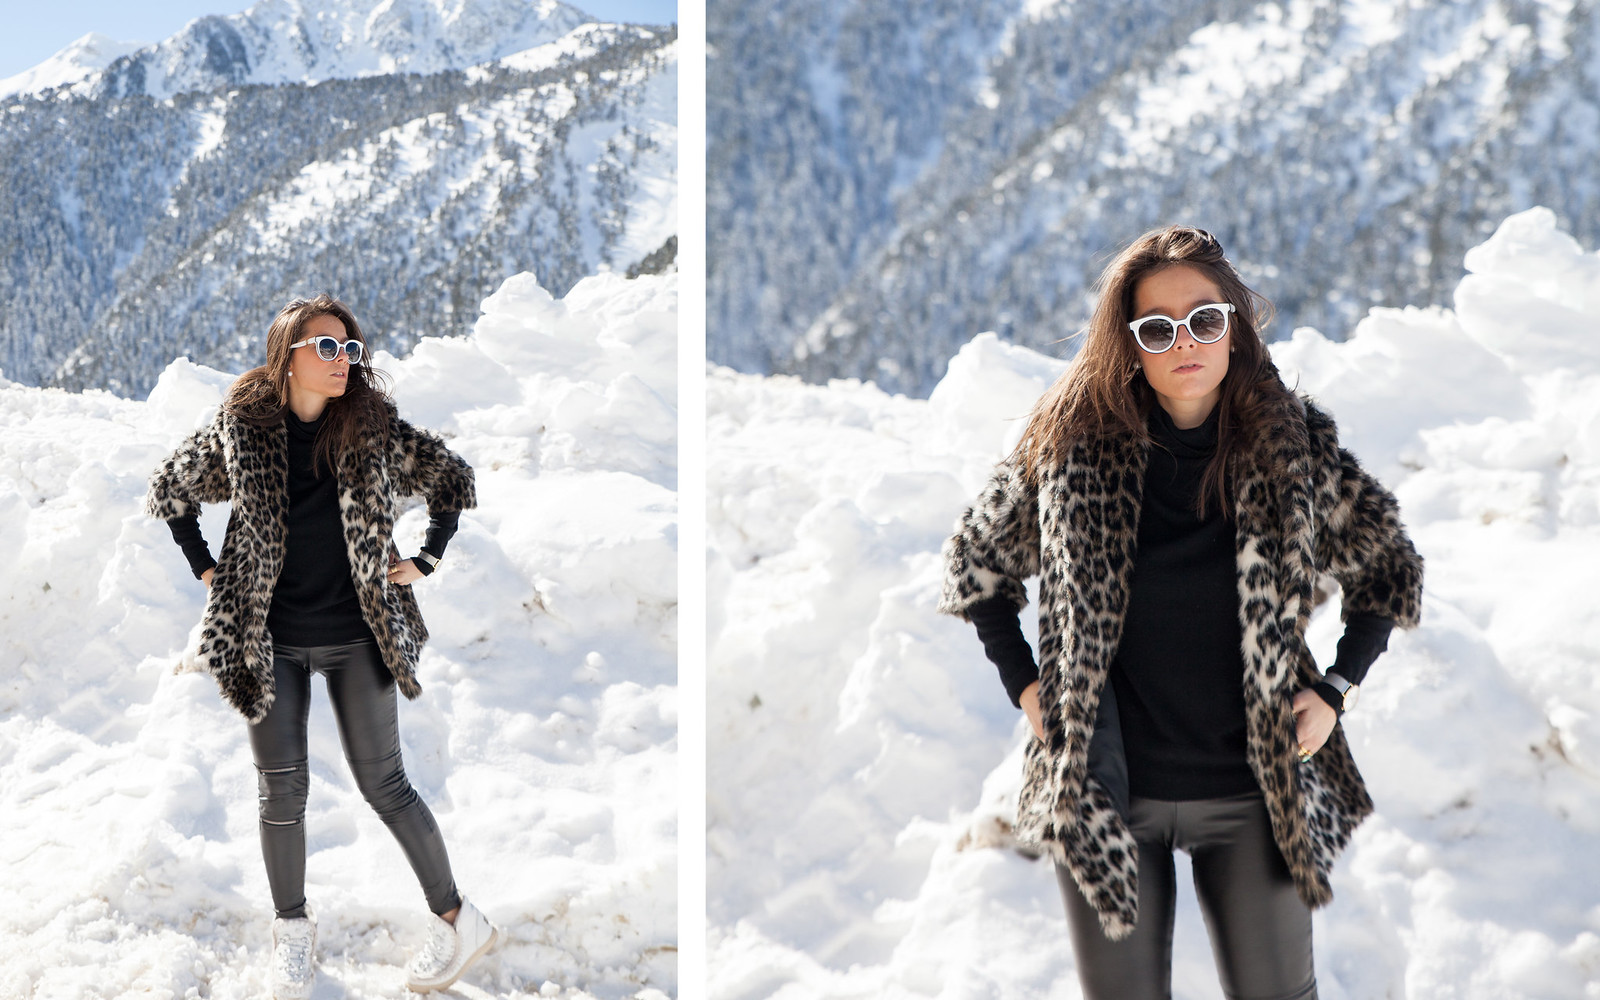 CÓMO COMBINAR LOOK ABRIGO DE LEOPARDO look and chic style snow the guest girl noholita dulceida sincerely jules lovelypepa laura influencer theguestgirl baqueira influencer barcelona look leopard coat faux fur ariviere nature matilda djfer